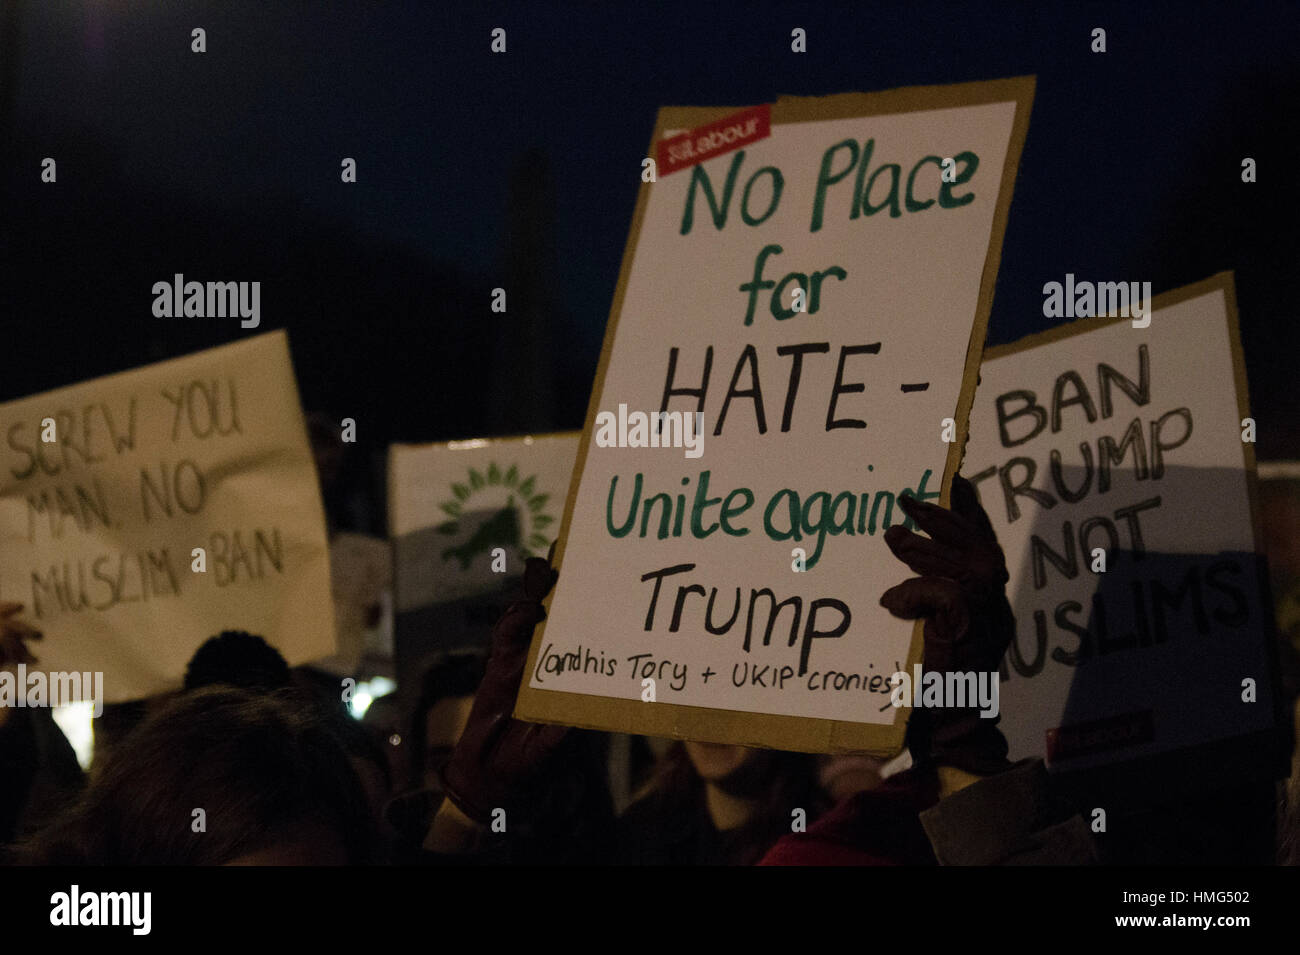 Protest banner at Donald Trump protest - Stock Image